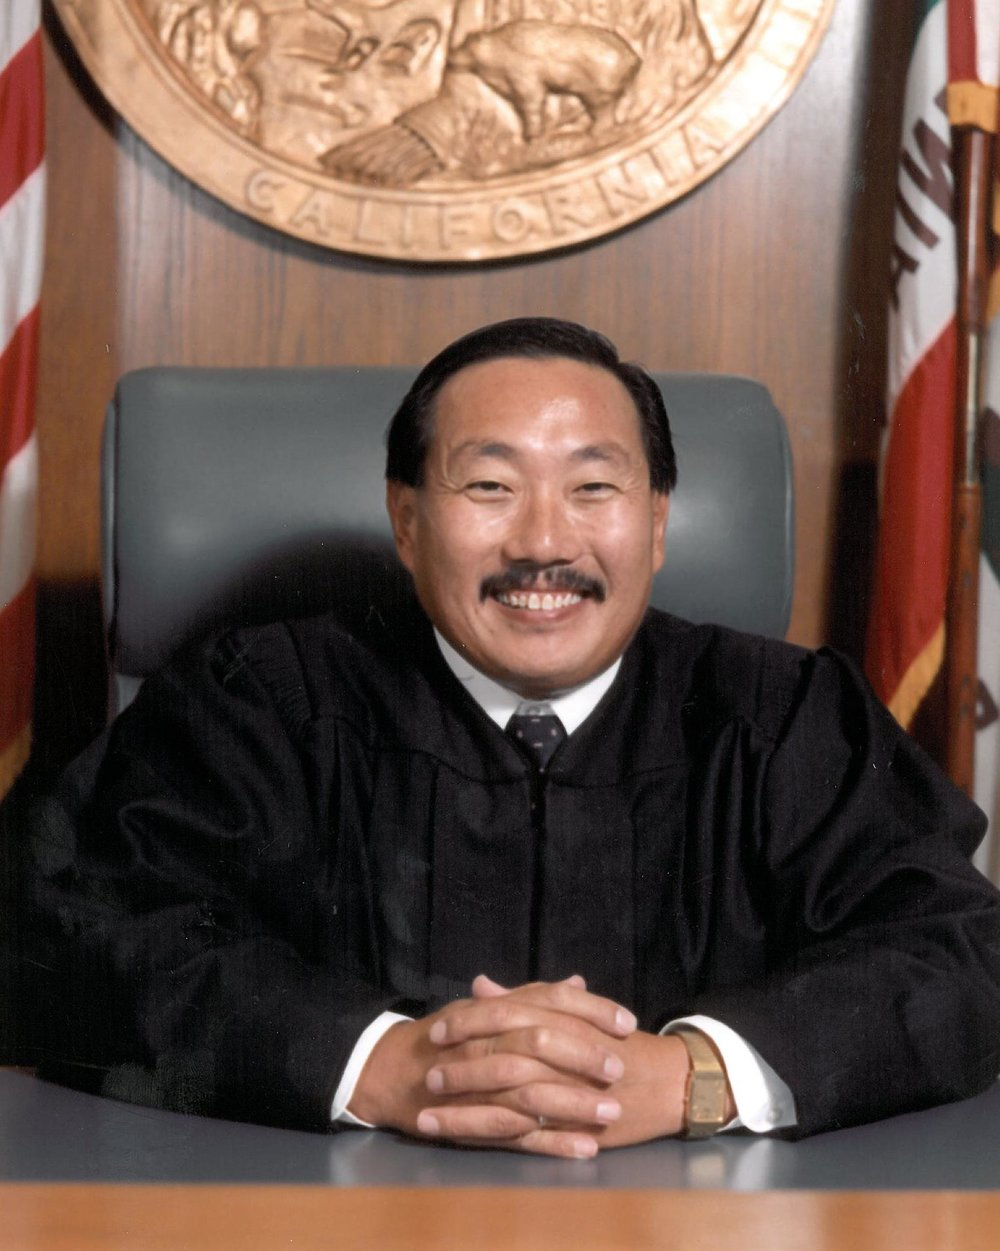 2019 - Judge Eric NakataSuperior Court of San Bernardino...will receive the Award at the Annual Kaufman-Campbell Banqueton Thursday, May 9, 2019, held at the National Orange Show.Details to be announced soon!